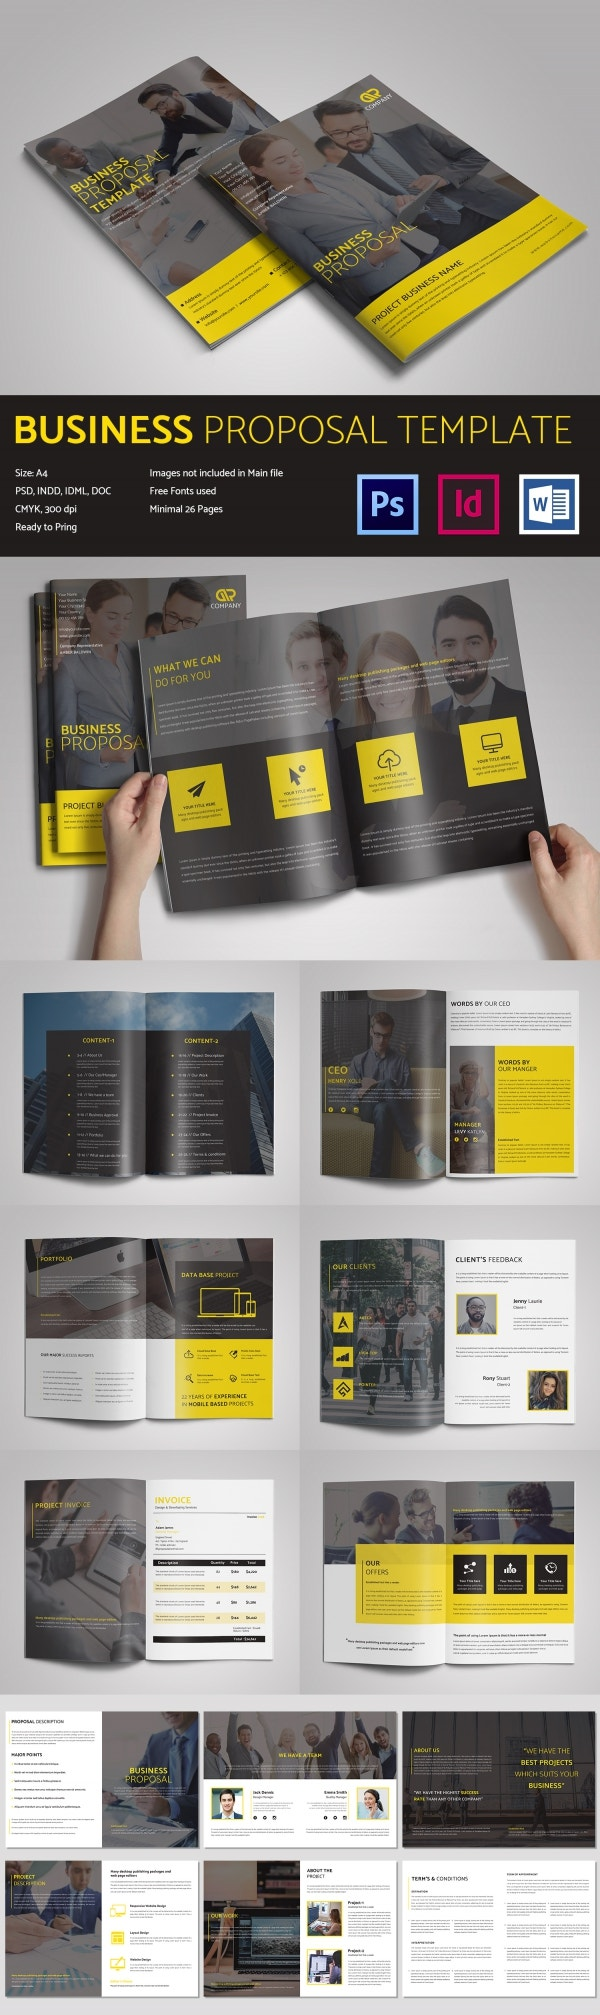 Well Designed Business Proposal Template